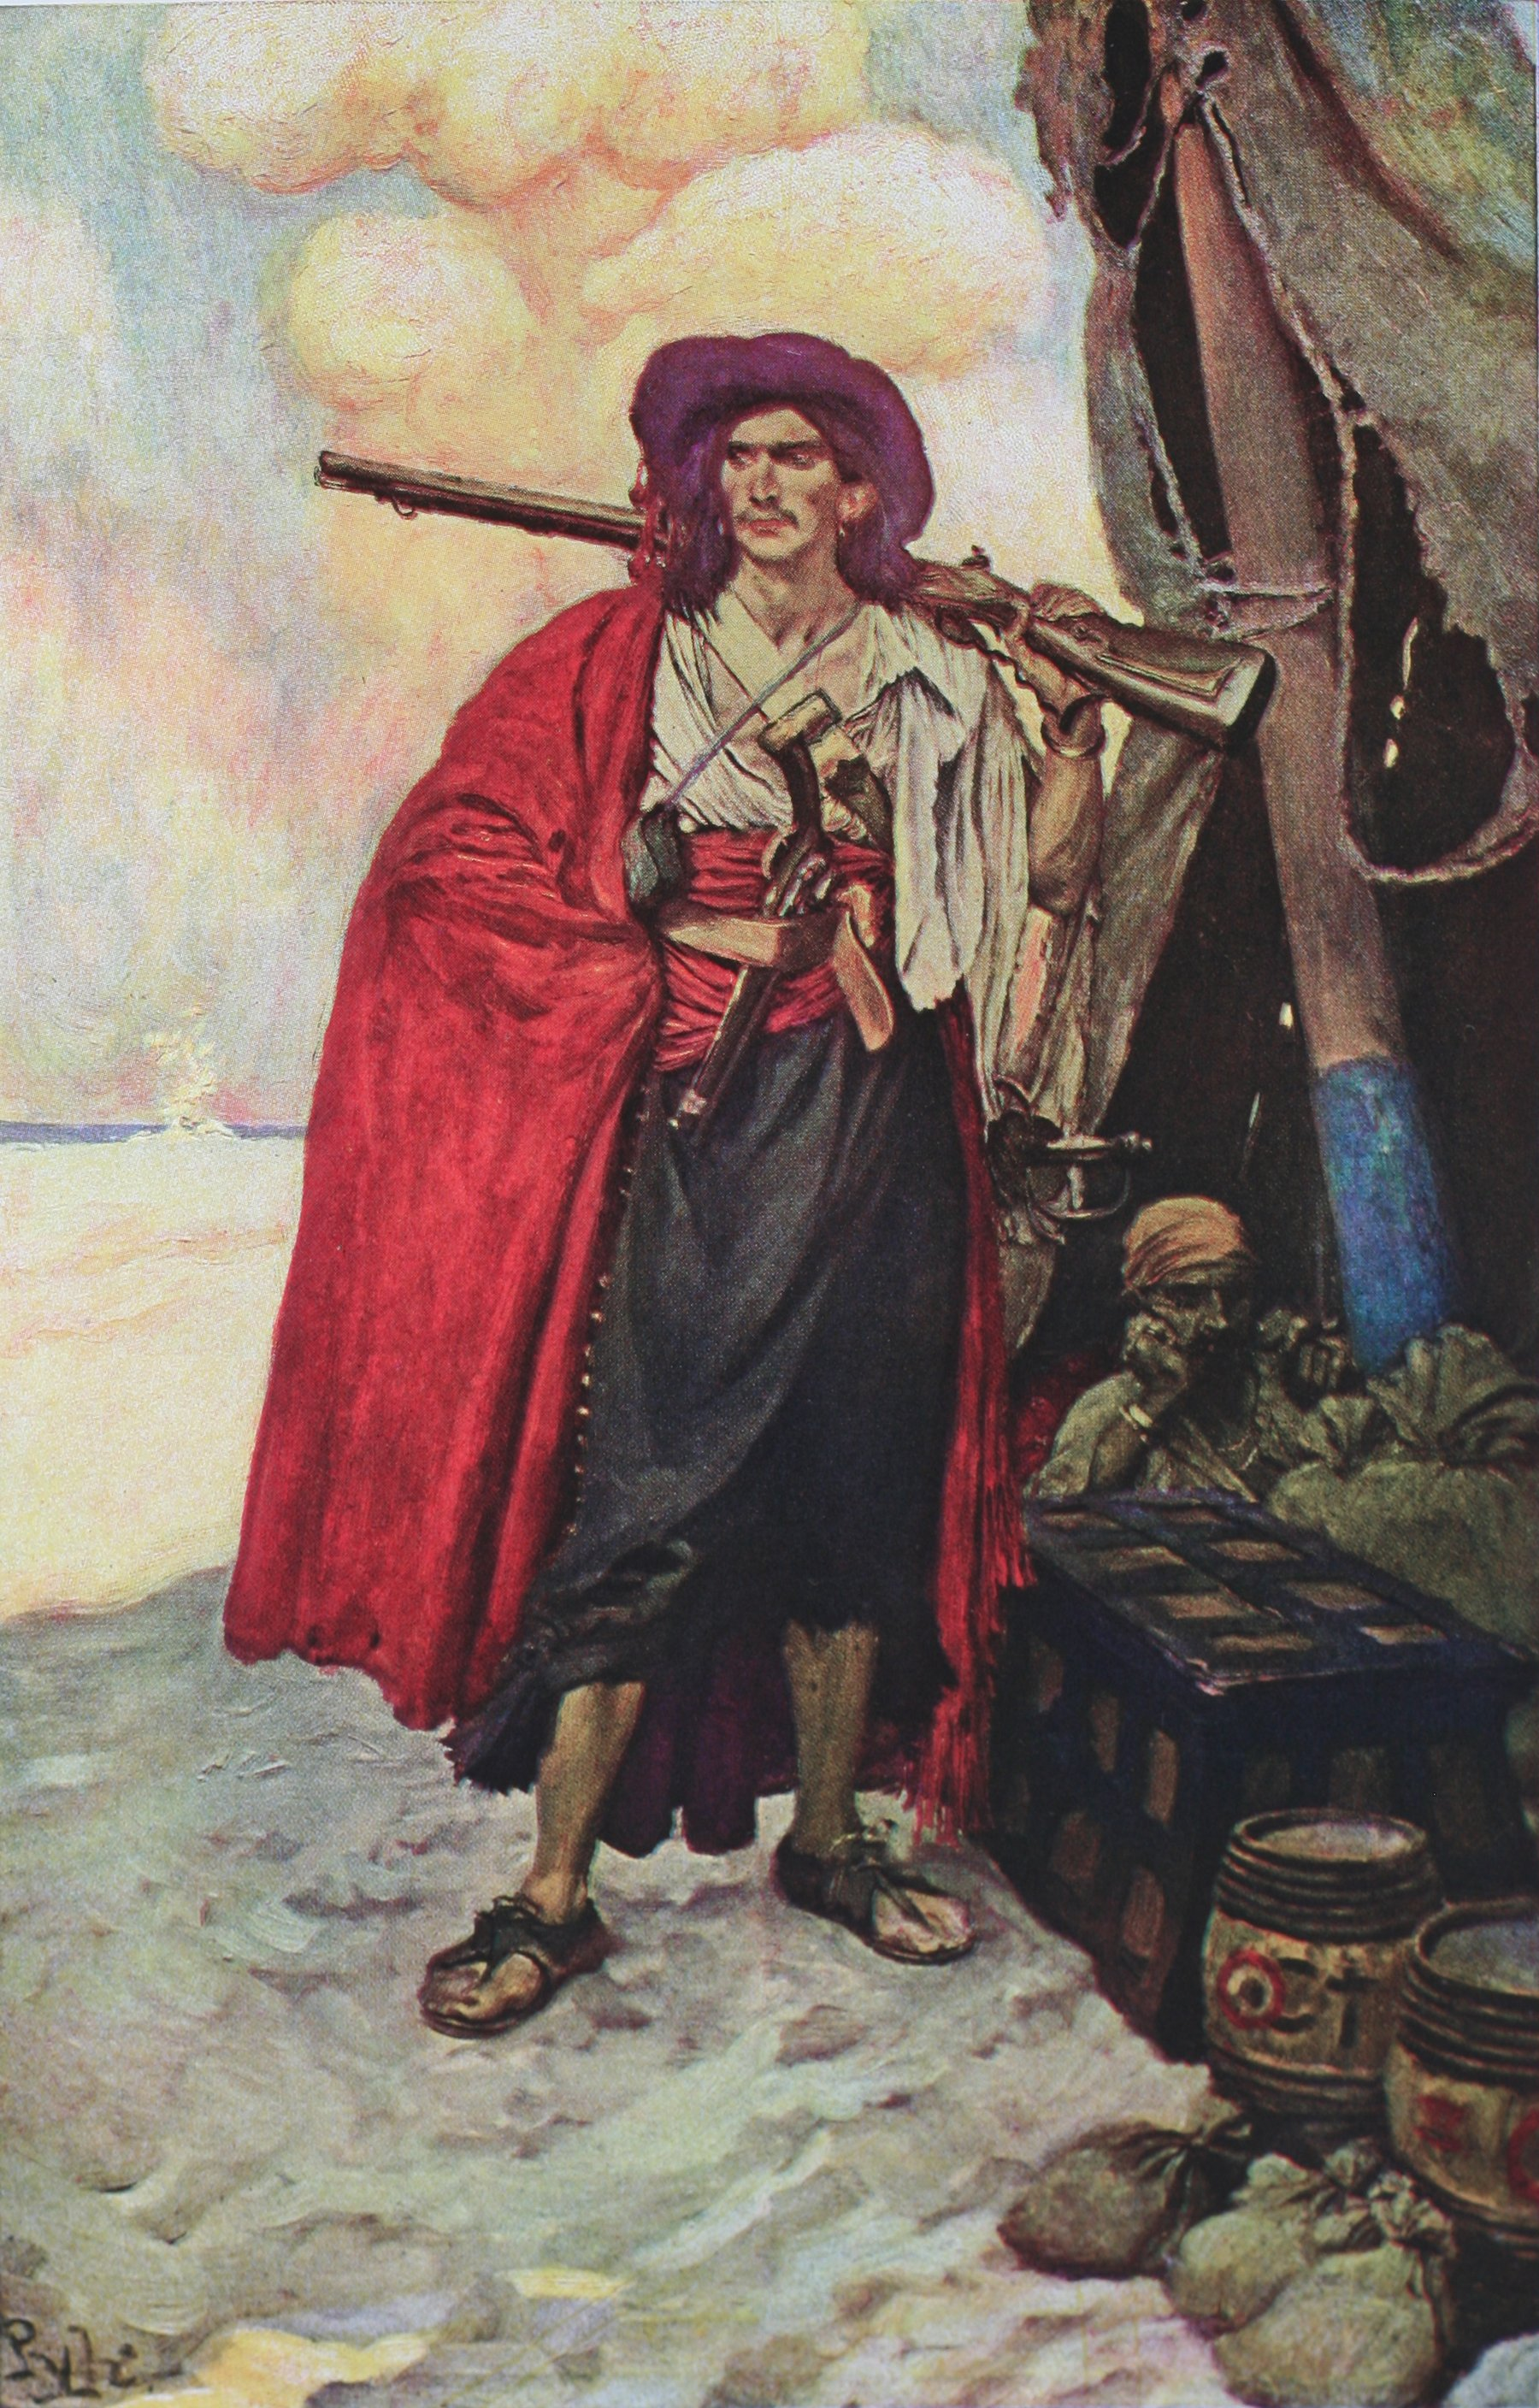 Howard Pyle - The Buccaneer was a Picaresque Fellow